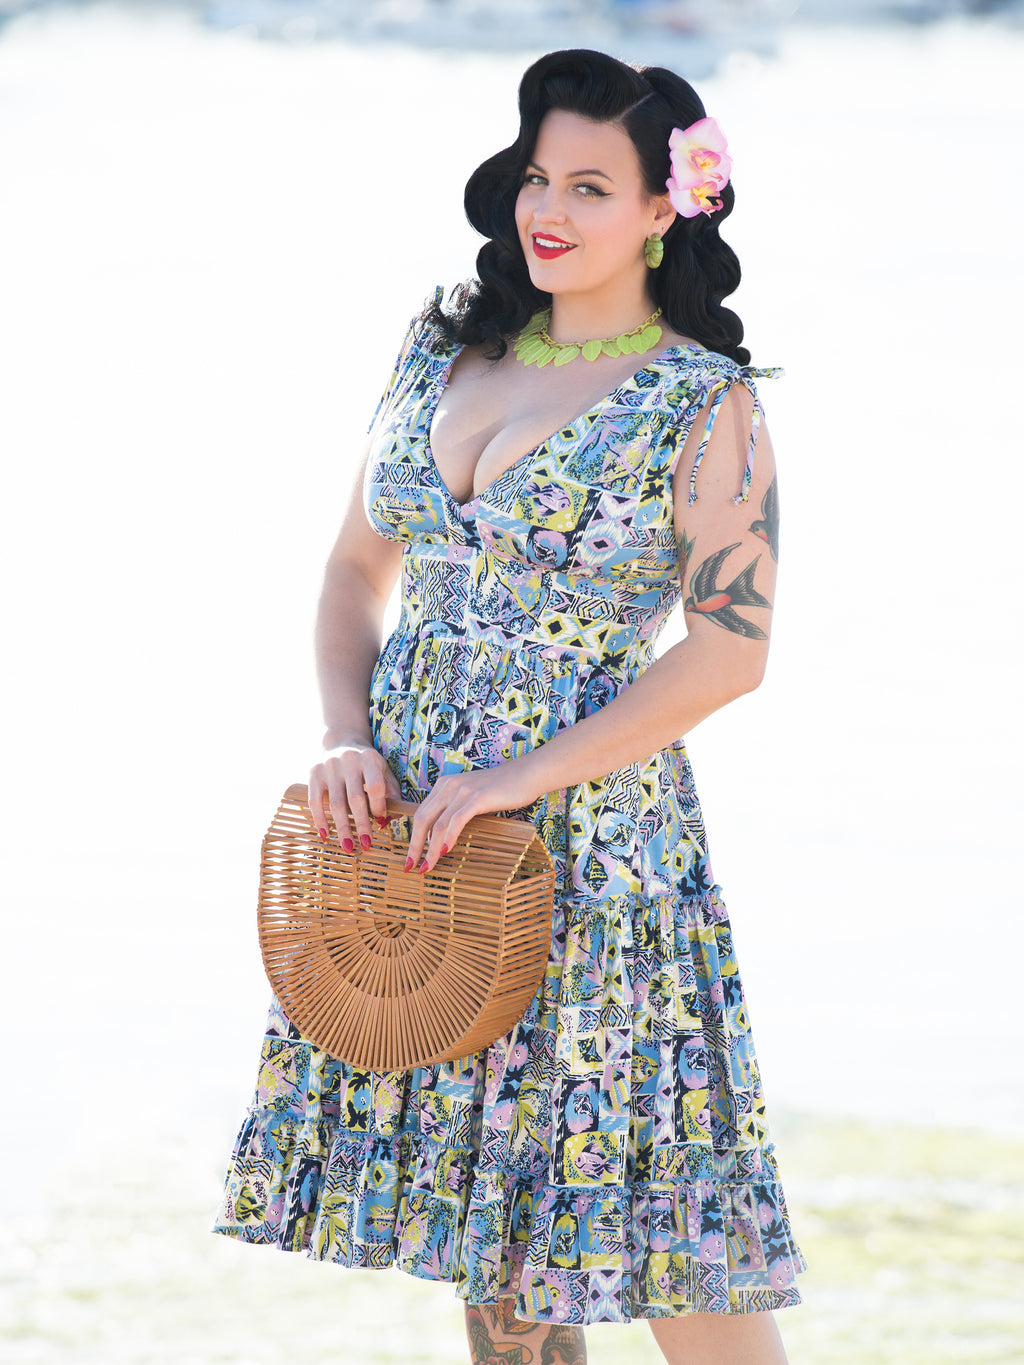 Audra Dress TikiTastic Tiki Hawaiian Print Aloha Fish Vintage Inspired Pinup Clothing Retro Rockabilly 1950s Made in the USA